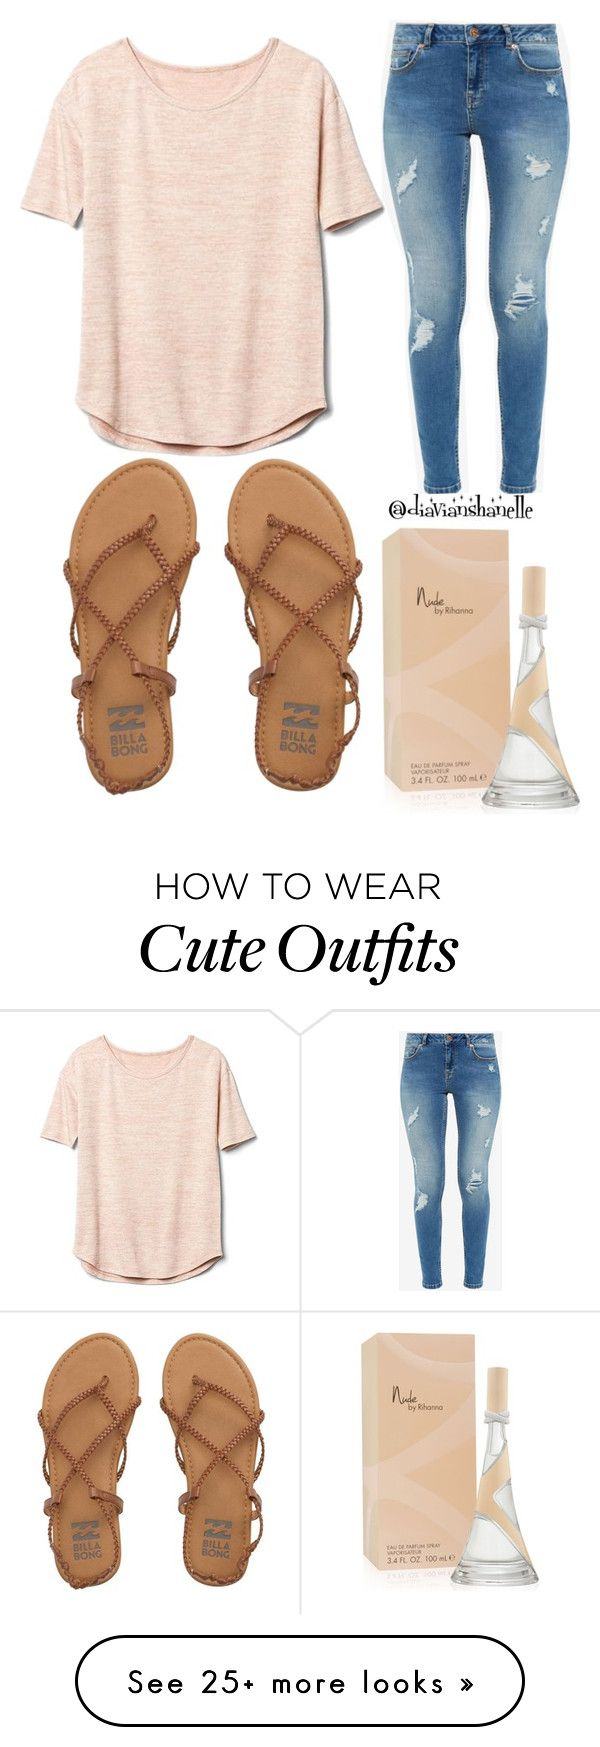 """""""Cute Beige Outfit"""" by diavianshanelle on Polyvore featuring Gap, Billabong, Ted Baker, fabulous and glamorous www.BlamNewsDaily.com"""